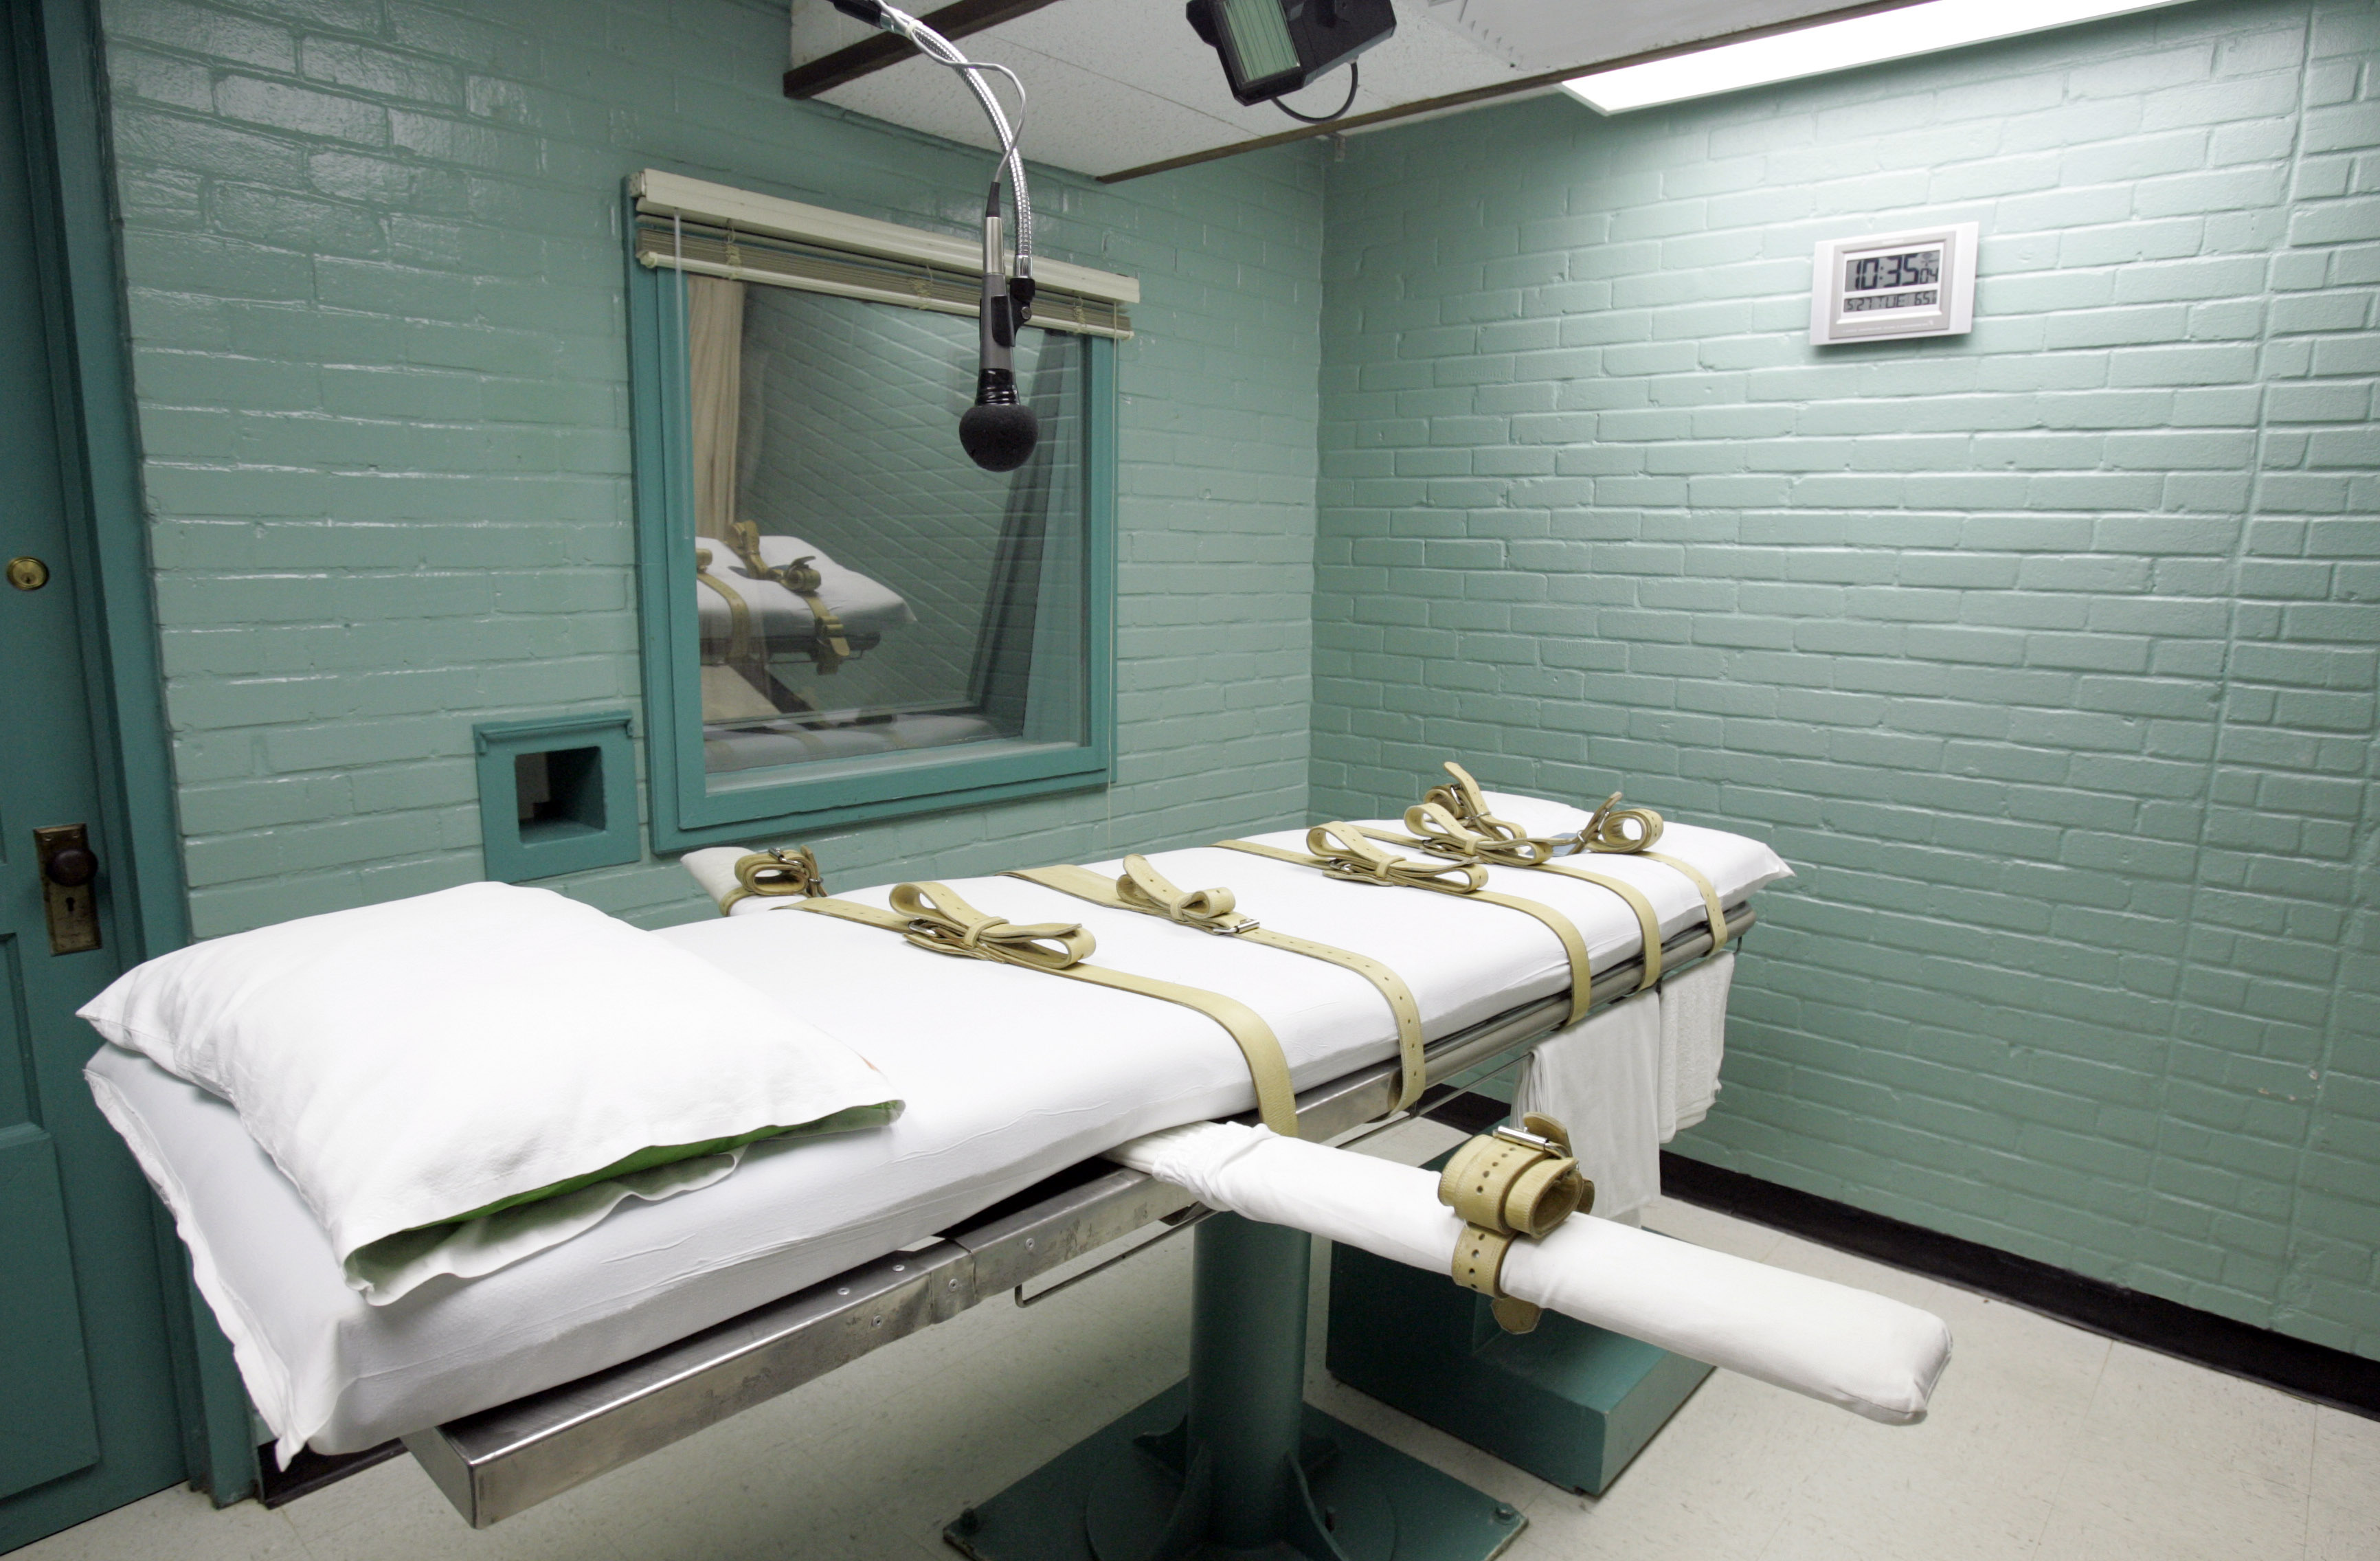 americans back death penalty